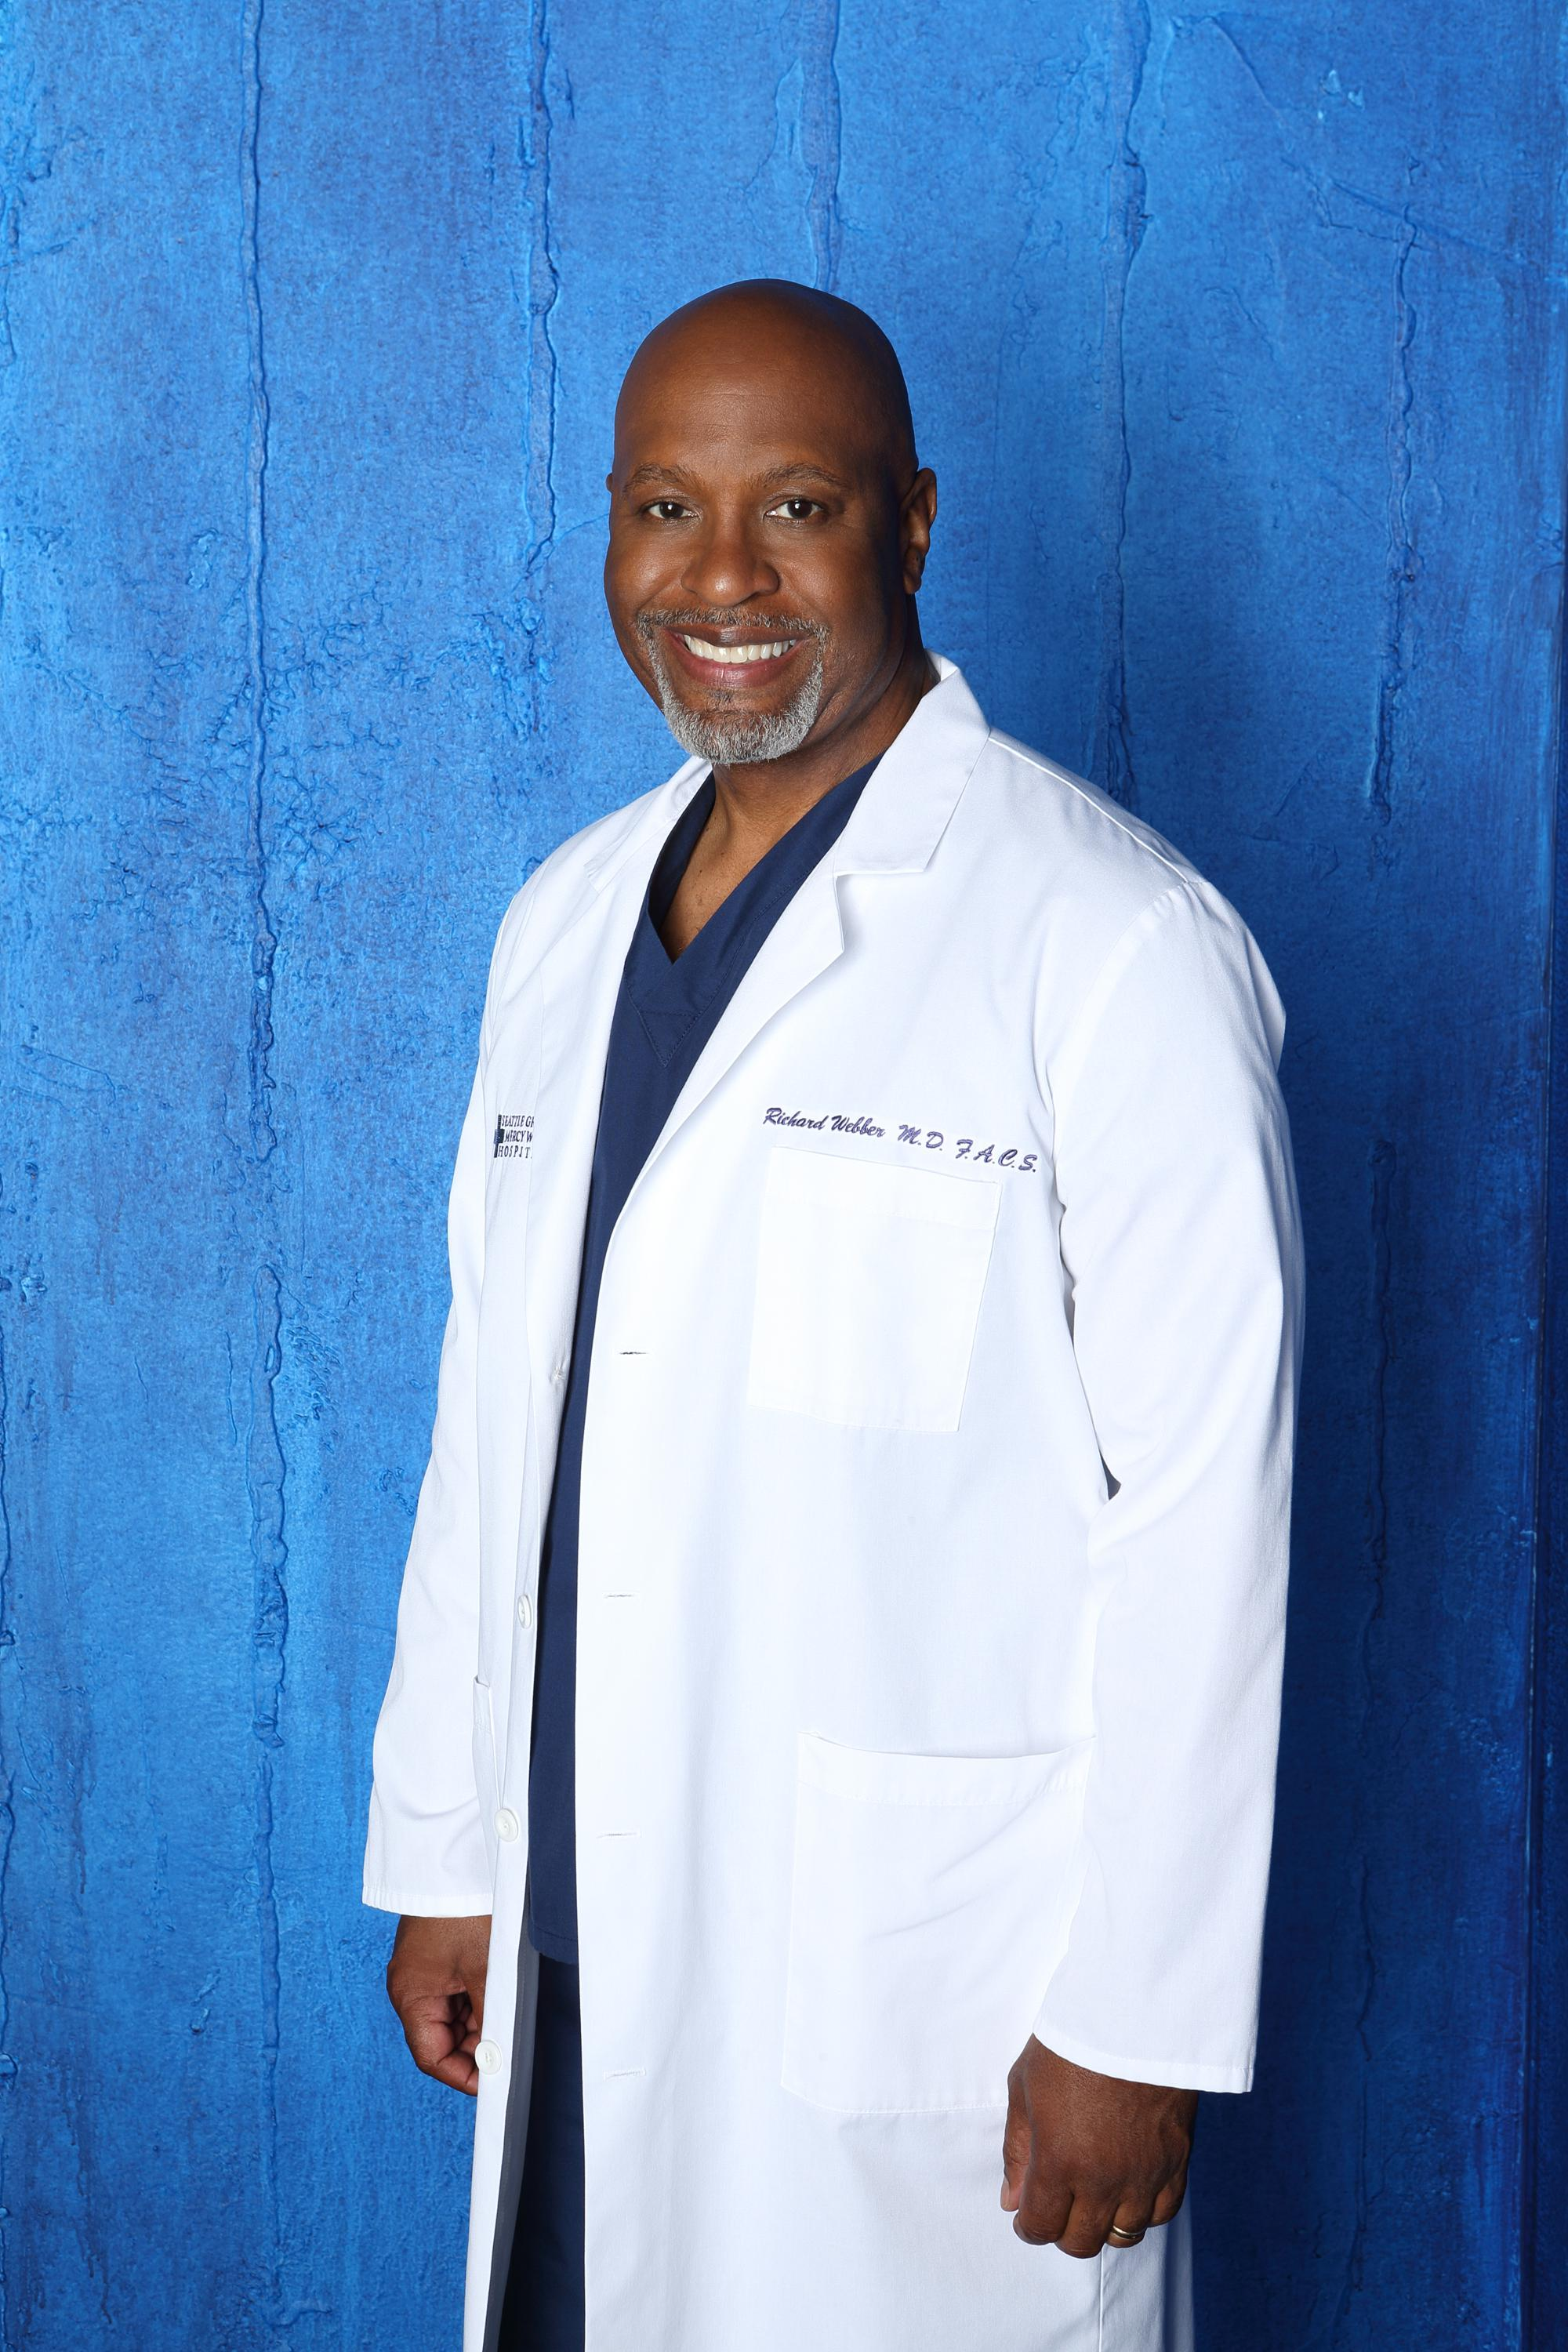 Greys-Anatomy-S09-James-Pickens-Jr-6-dvdbash | DVDbash